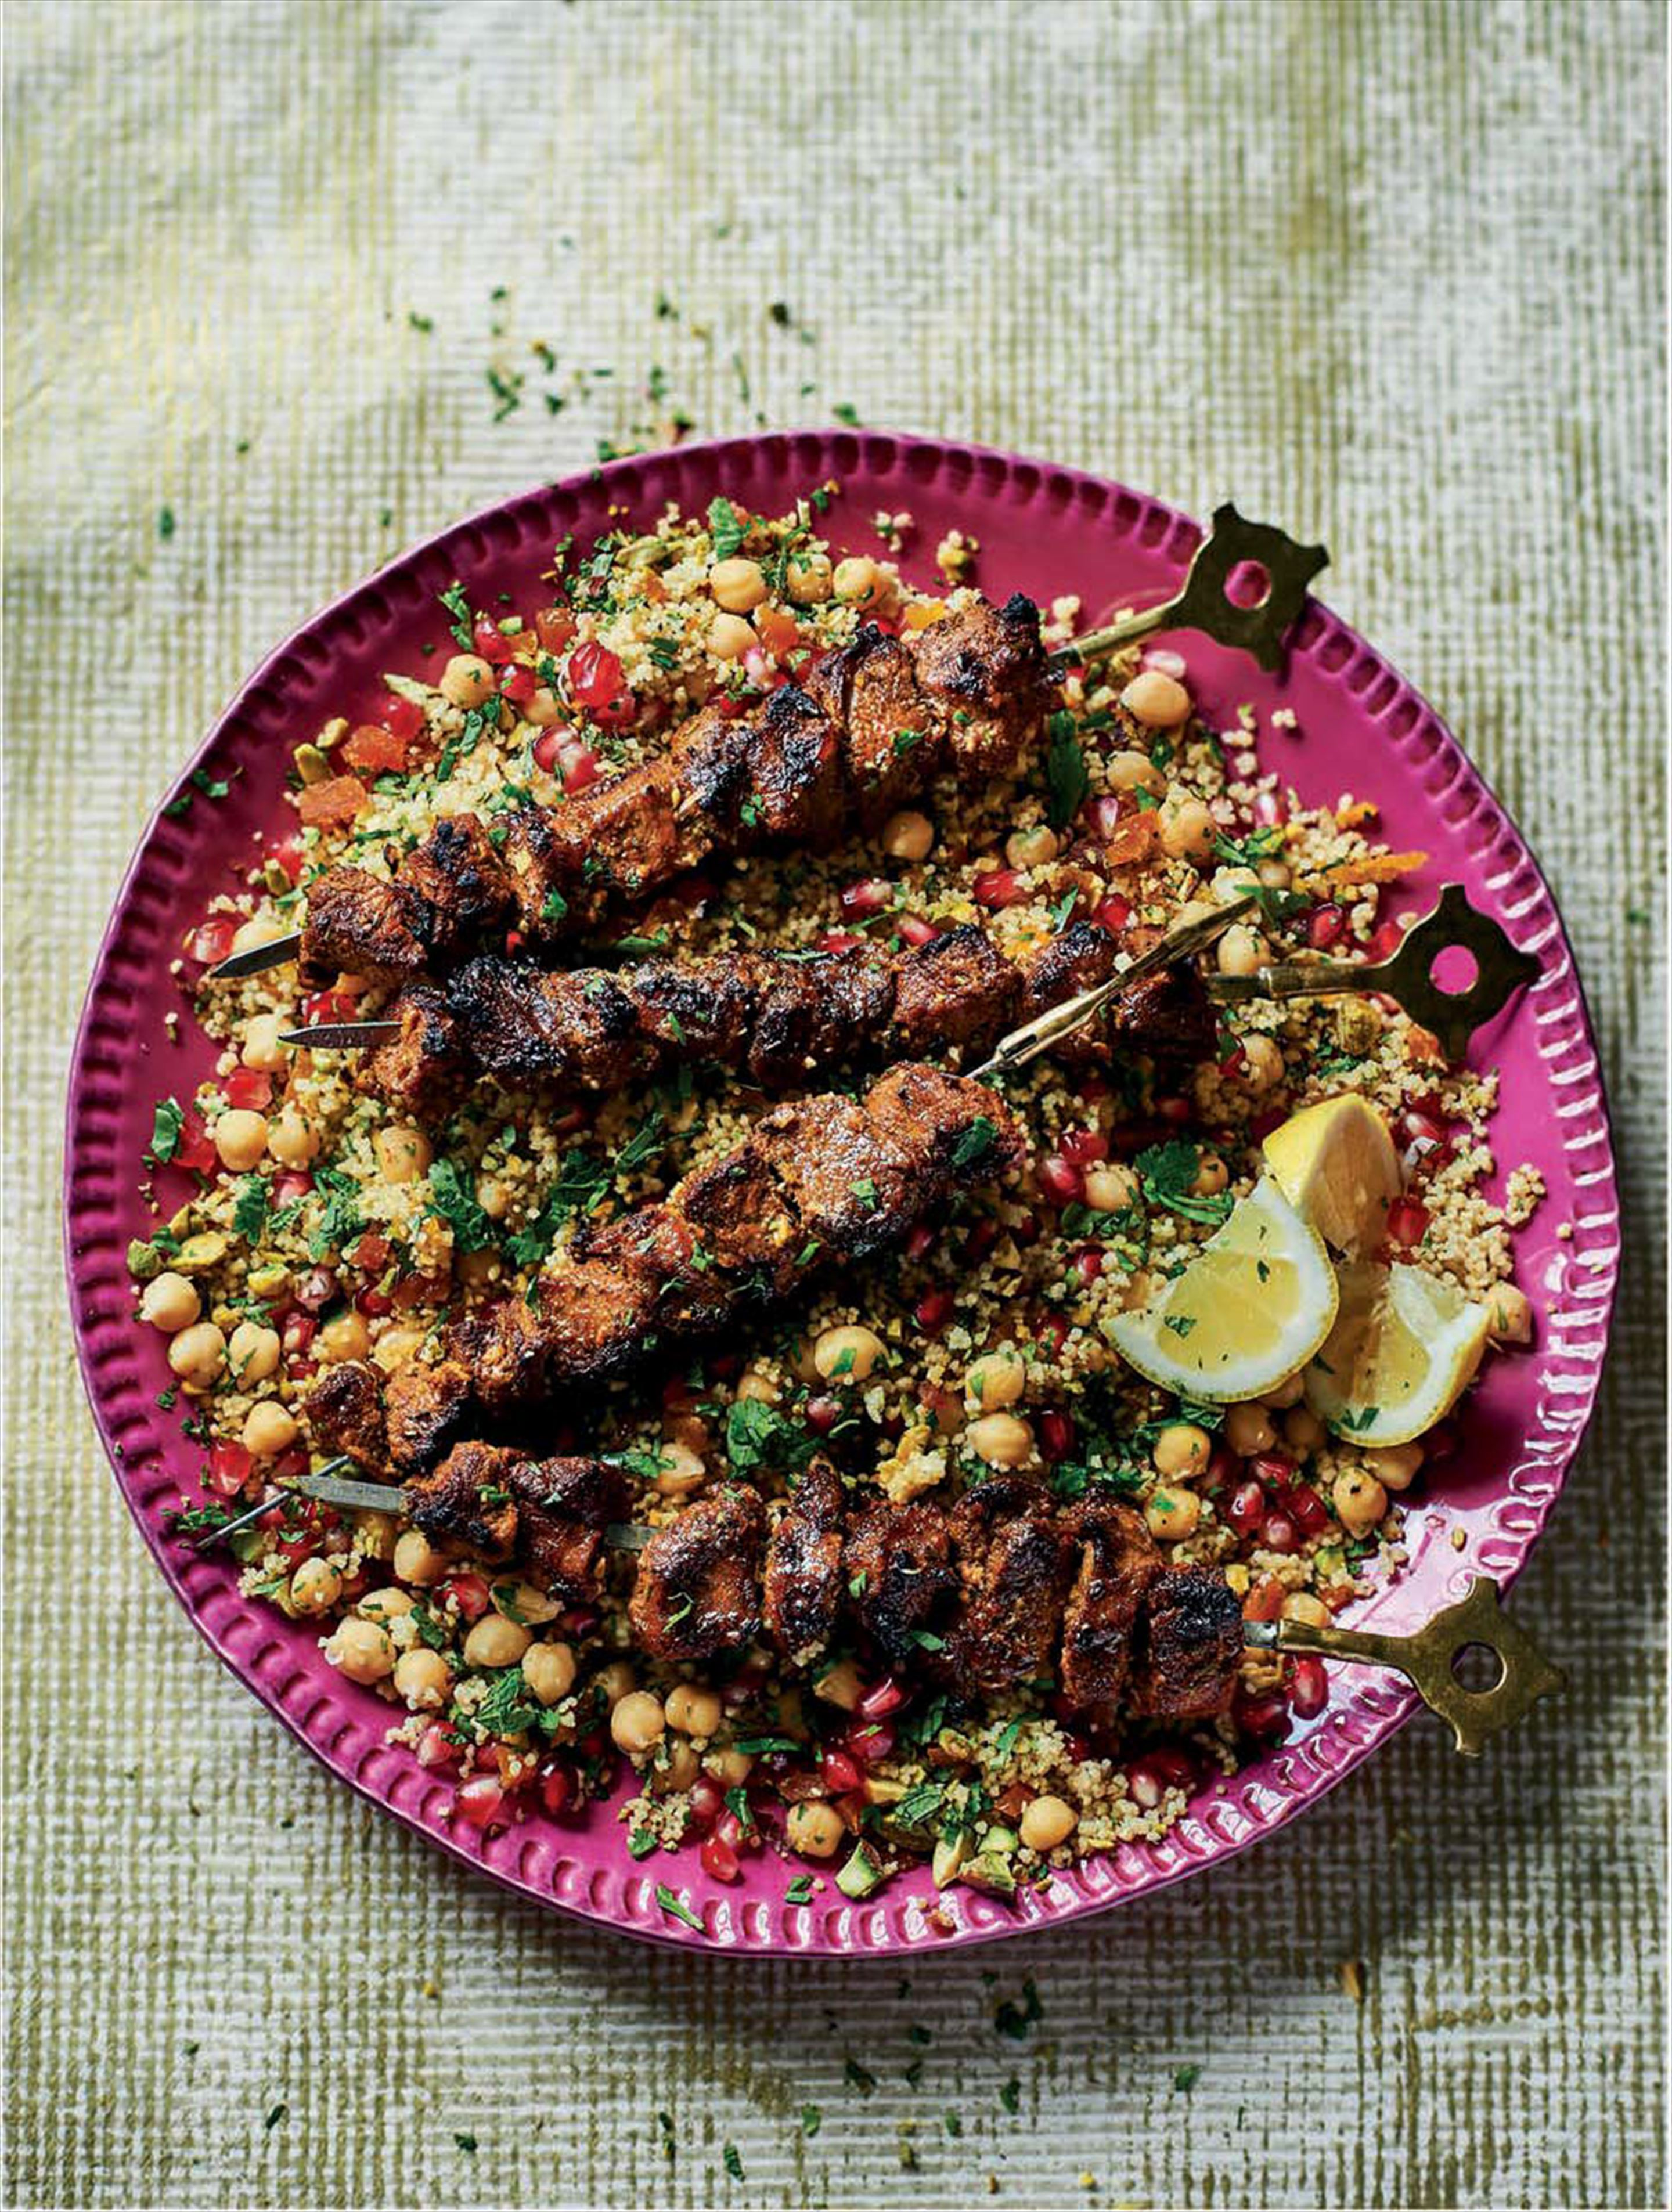 Moroccan spiced lamb